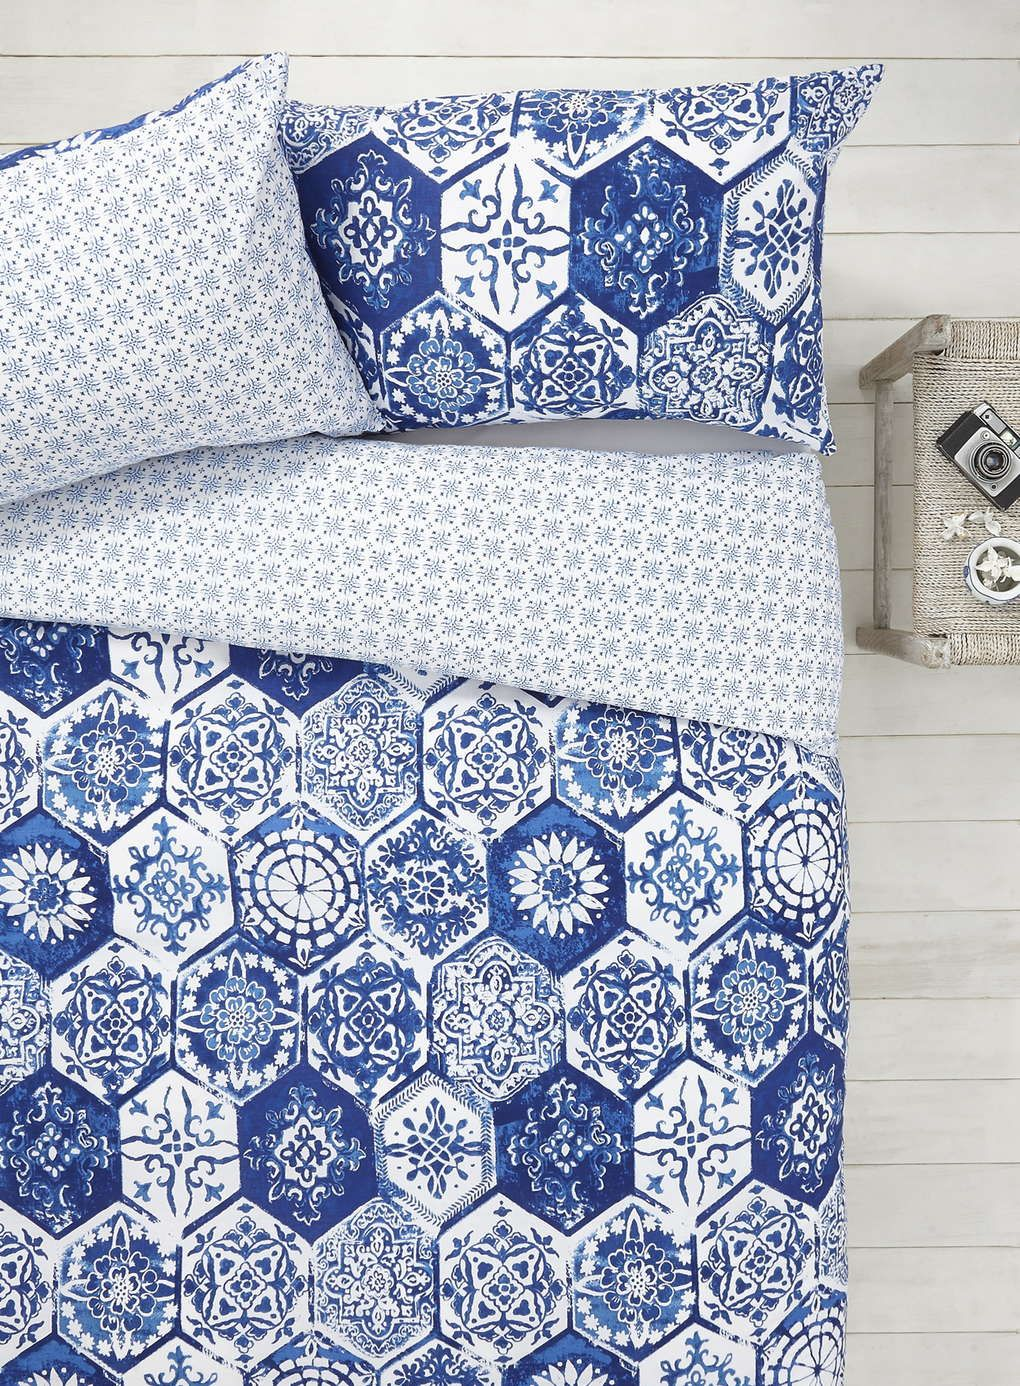 Blue and white bedding - Blue White Mosaic Tile Bedding Bhs 19 99